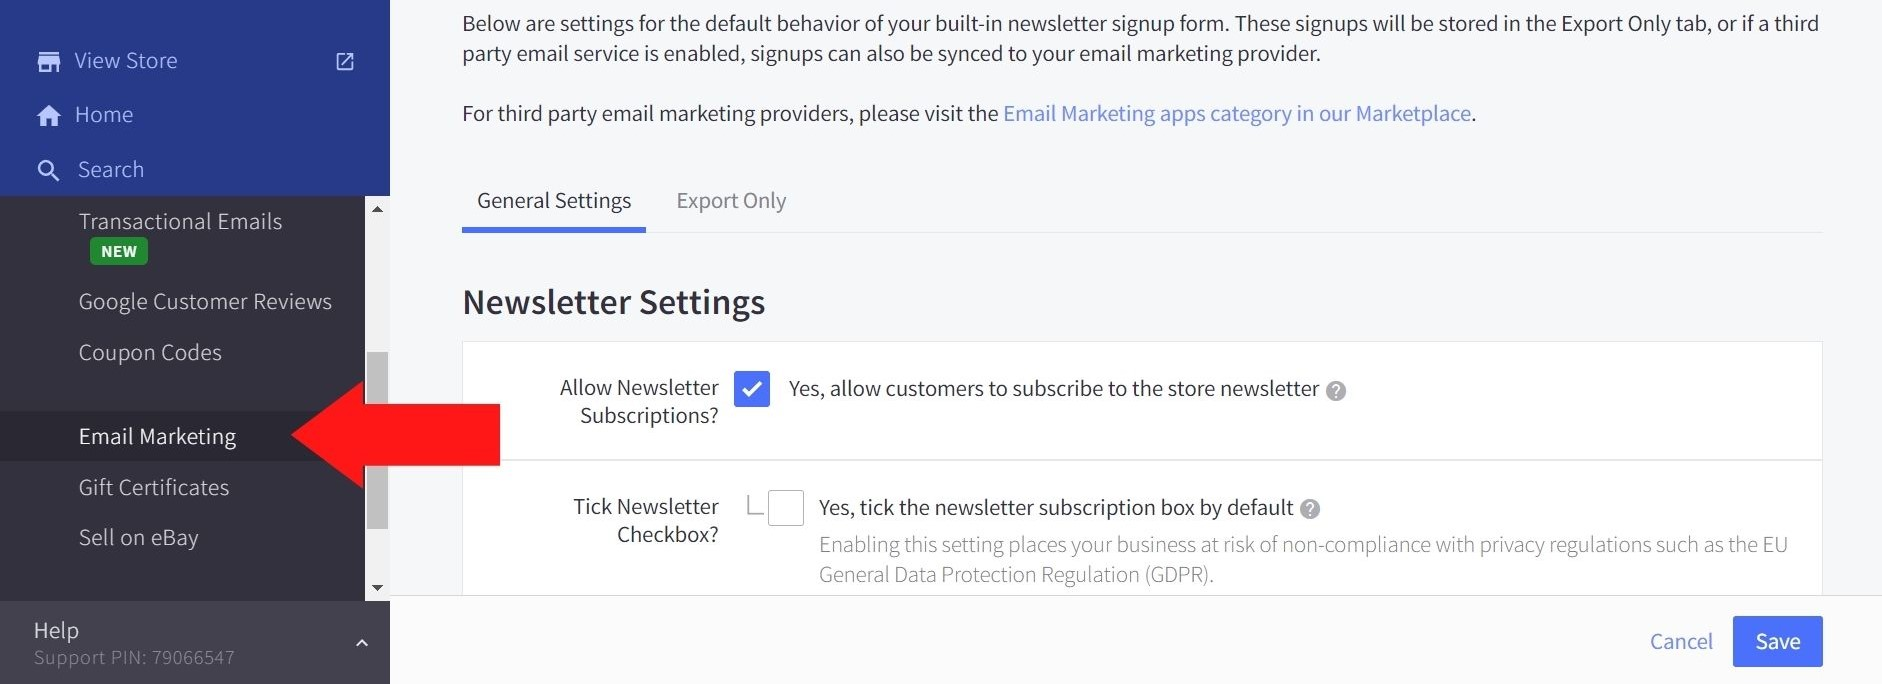 BigCommerce Email Marketing page